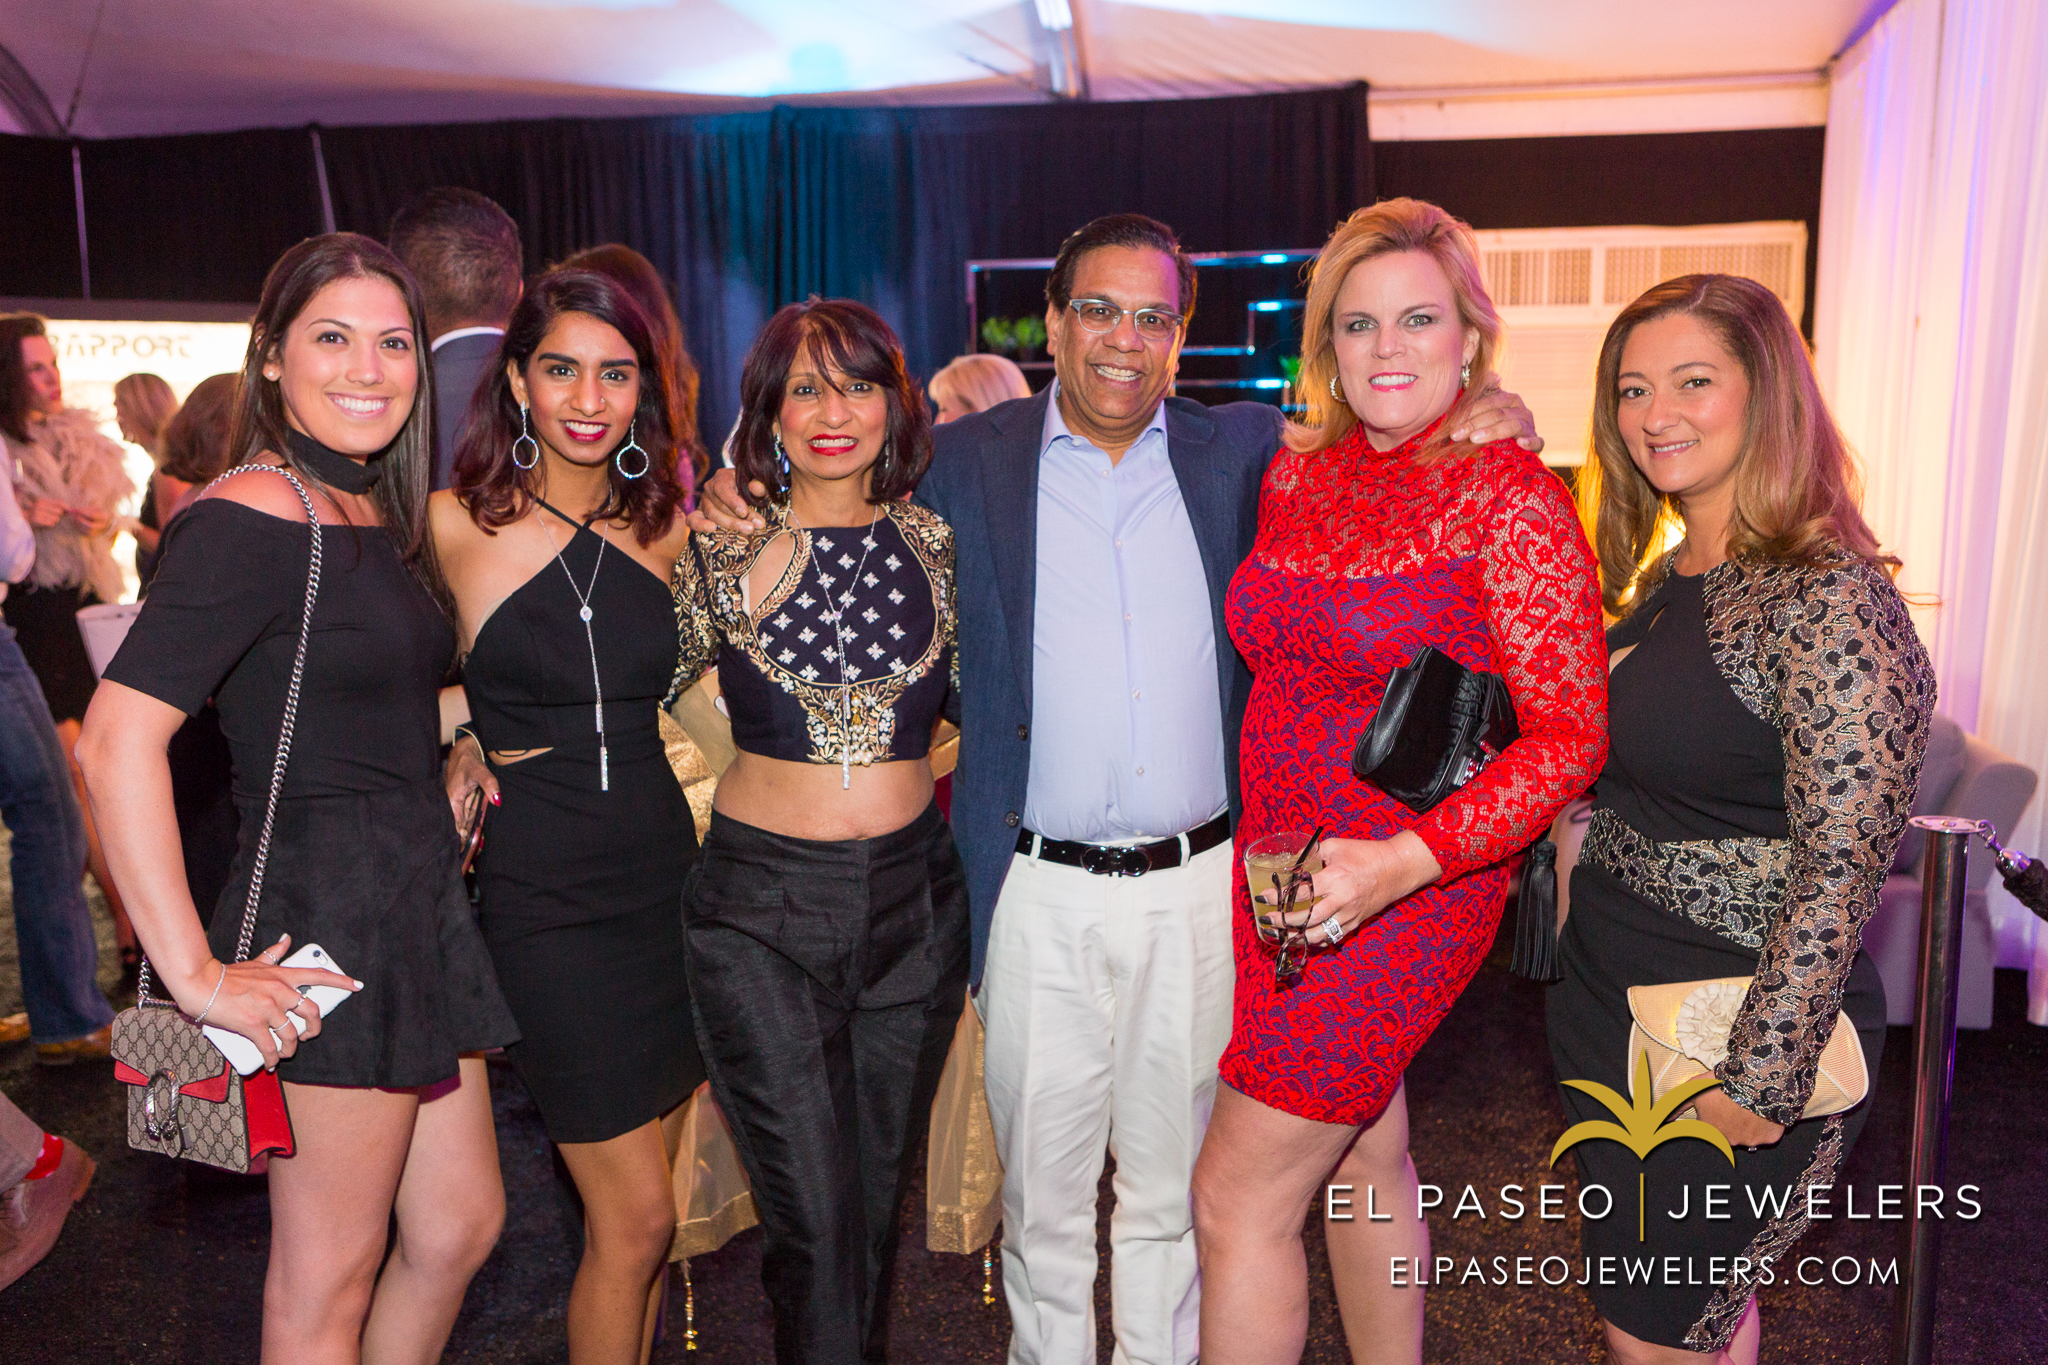 El Paseo Jewelers Fashion Week El Paseo – Day 6 – March 23rd, 2017